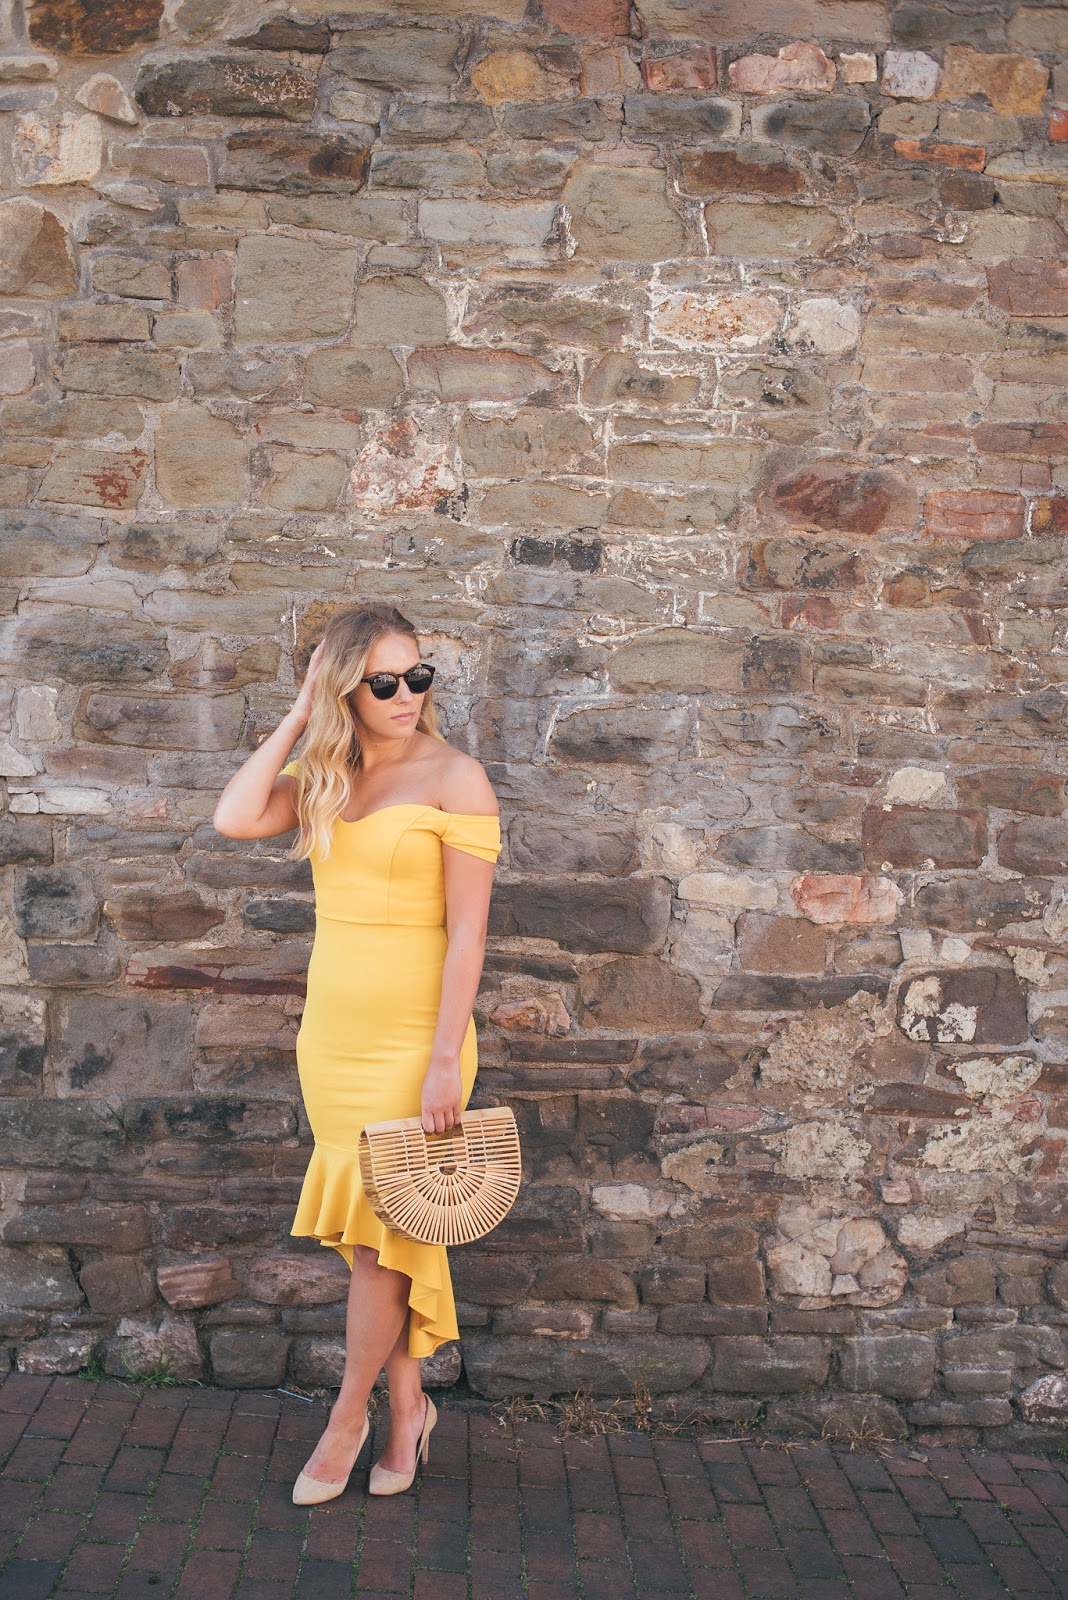 Rachel Emily in Yellow John Zack dress by Stone Wall with Sunglasses and Structured Bamboo Bag